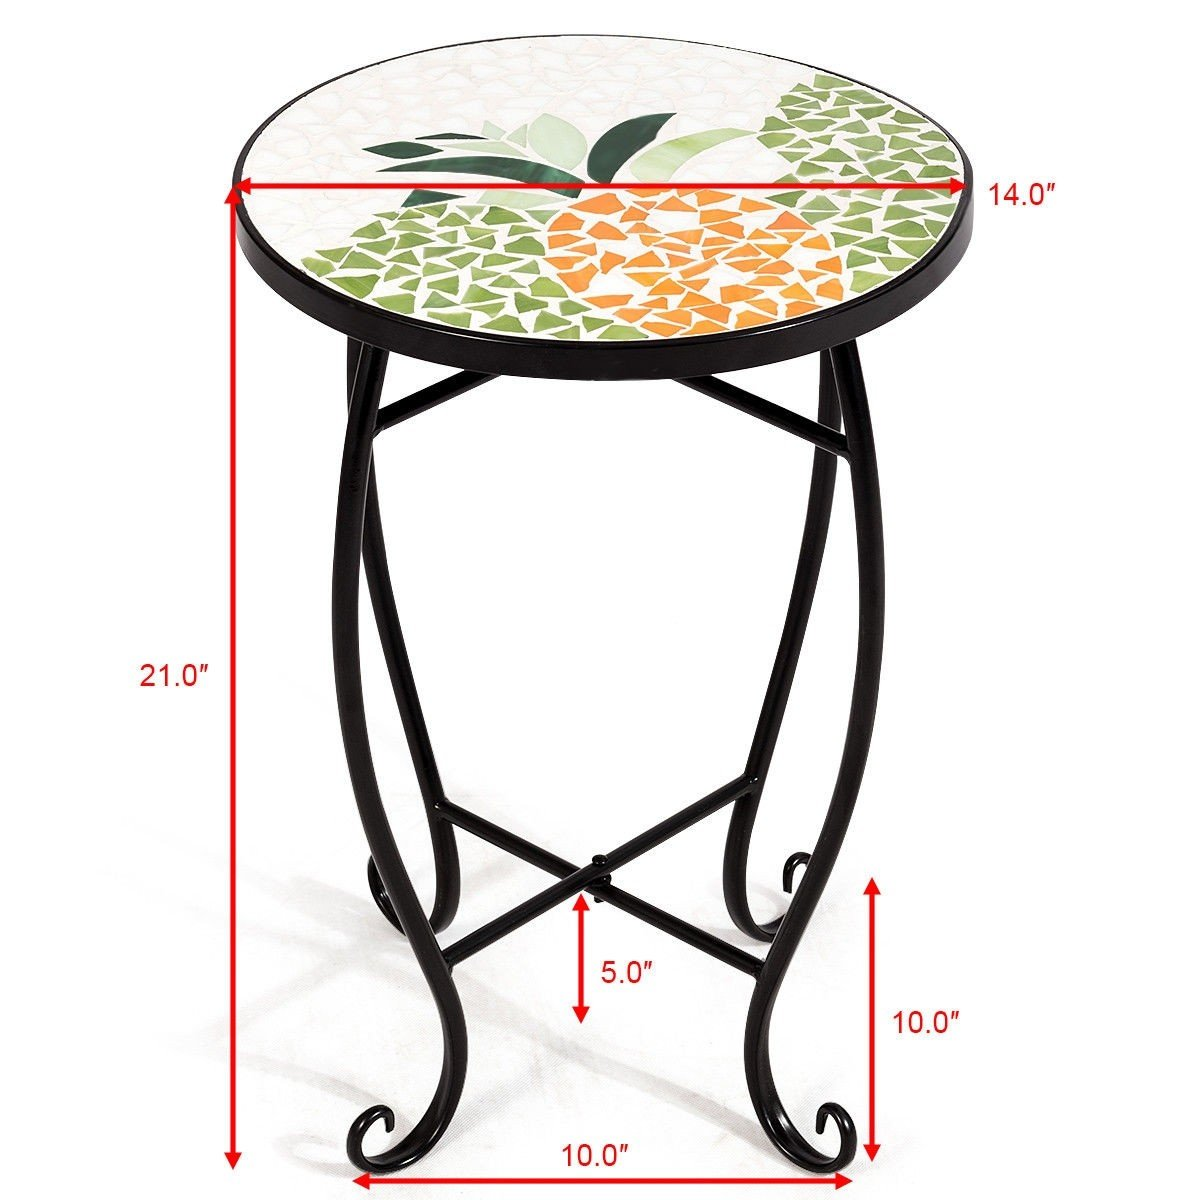 custpromo mosaic accent table metal round side outdoor plant stand cobalt glass top indoor garden patio sweet pineapple kitchen jcpenney bedroom furniture off white coffee black